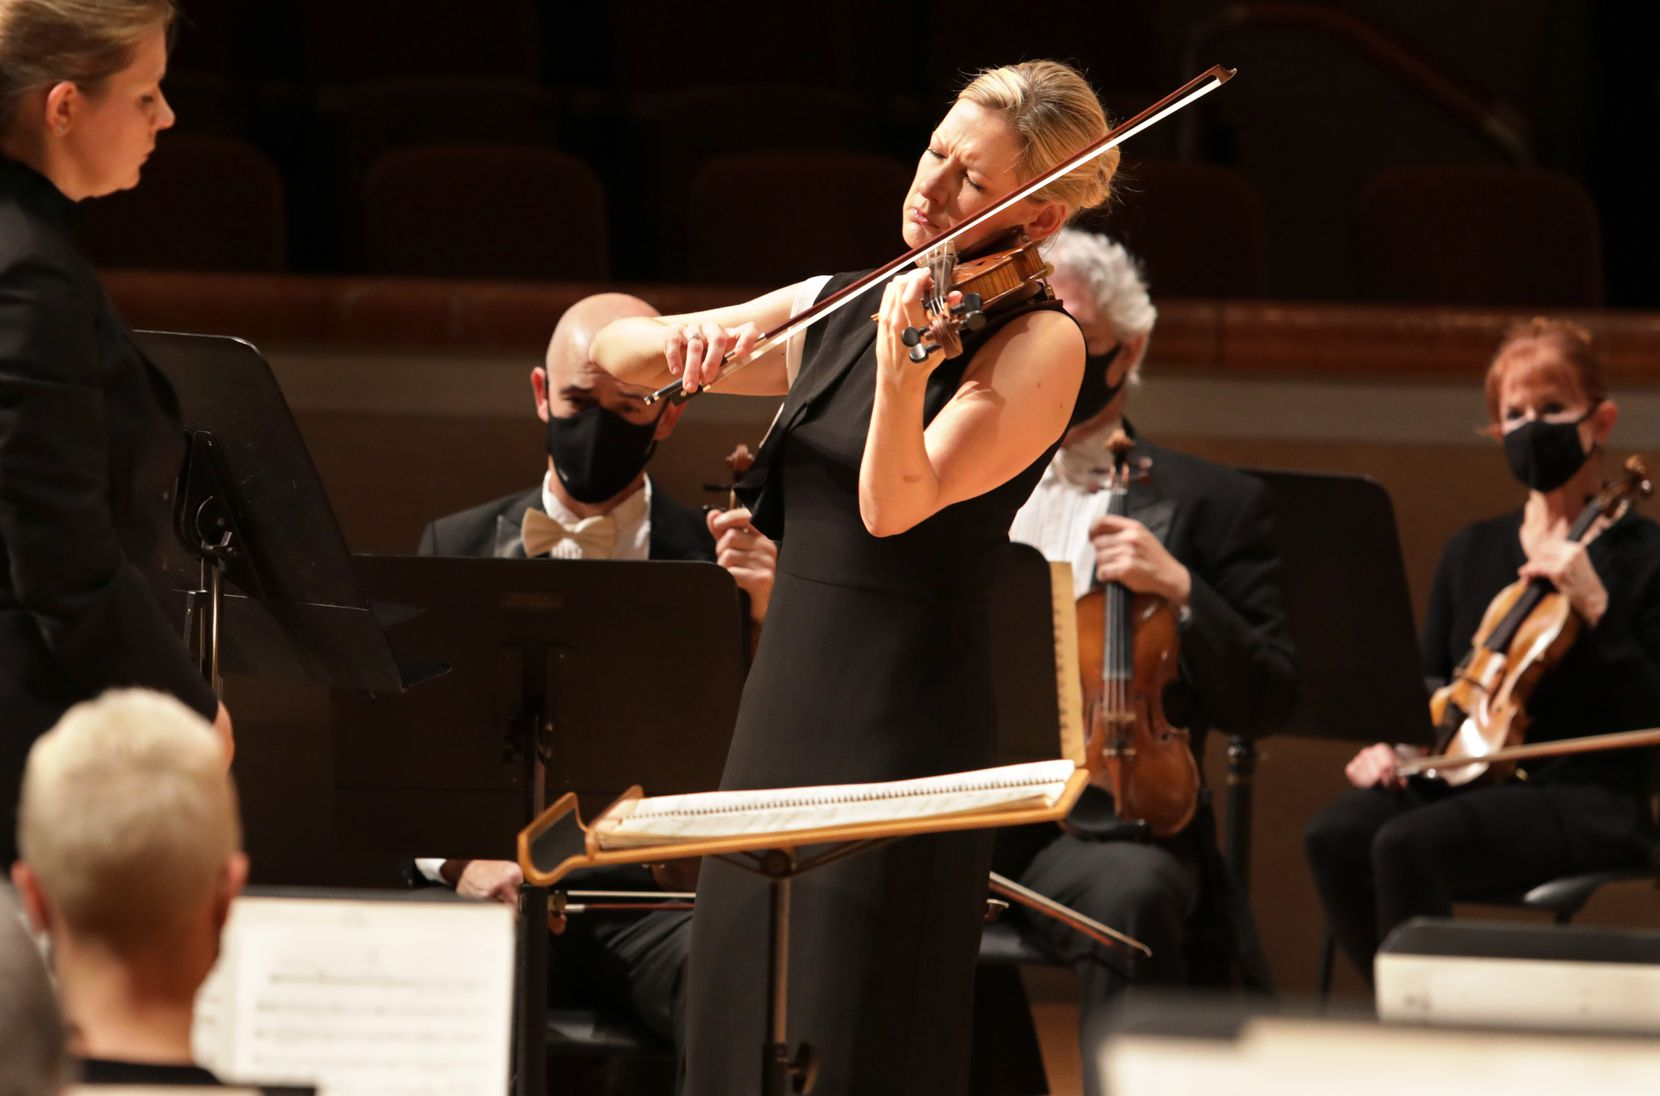 Violin soloist Angela Fuller Heyde performs with the Dallas Symphony Orchestra.